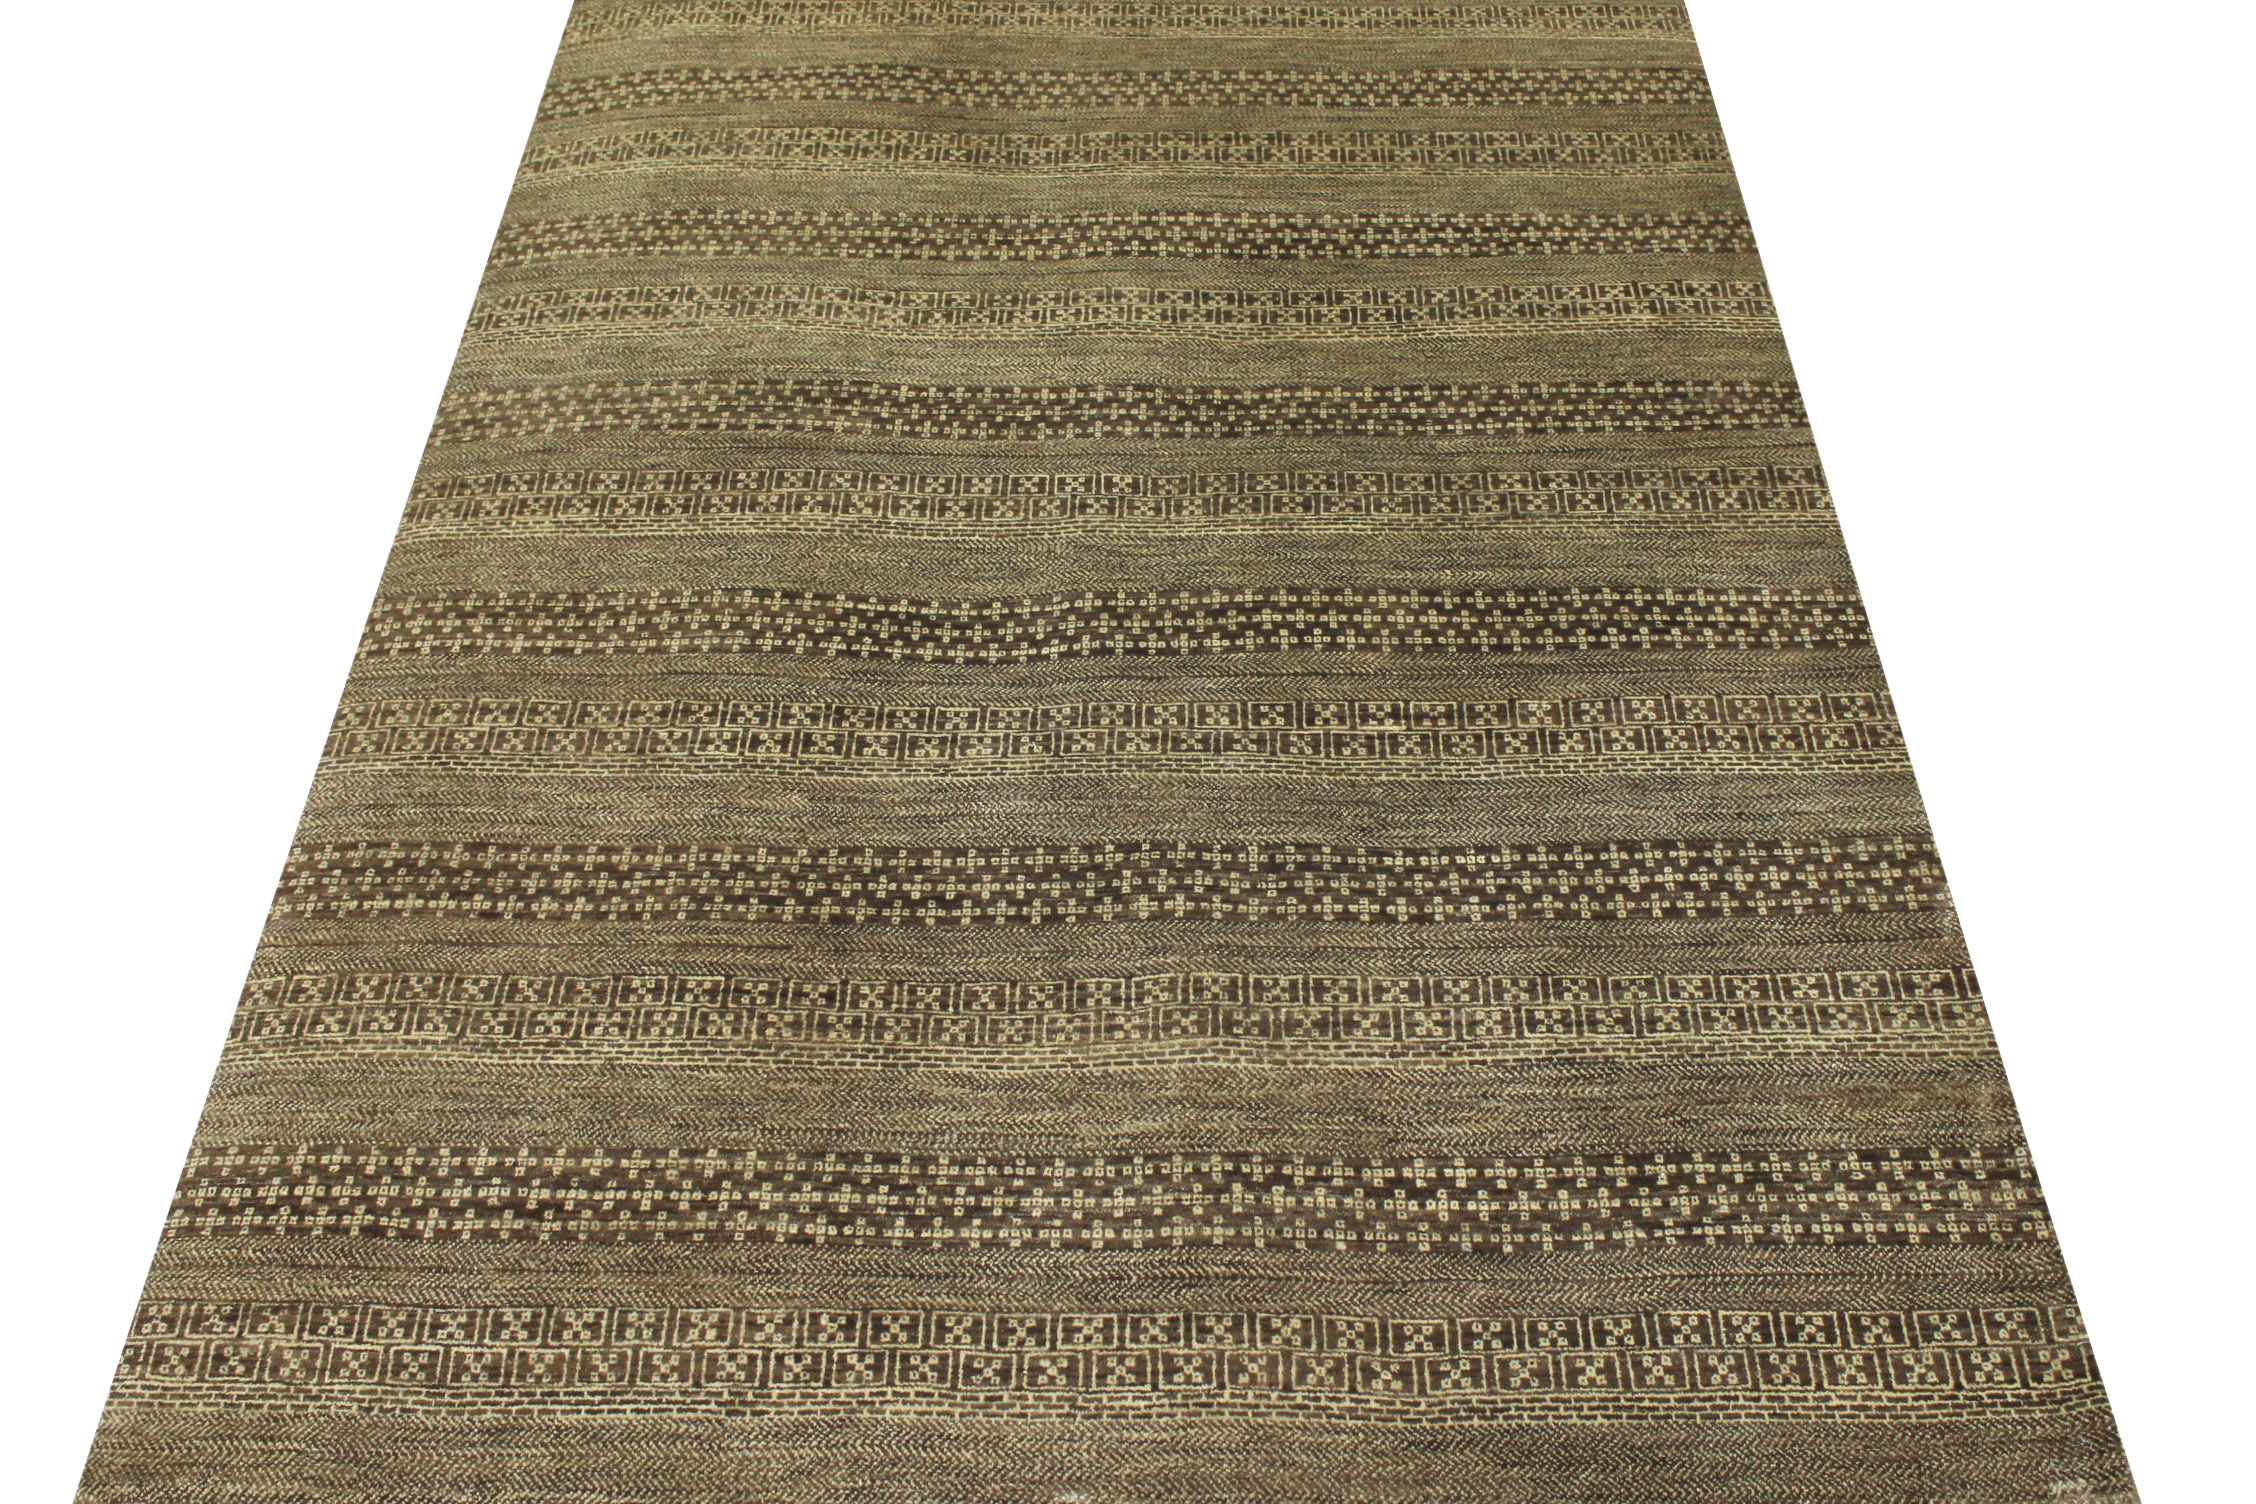 6x9 Contemporary Hand Knotted Wool Area Rug - MR16232